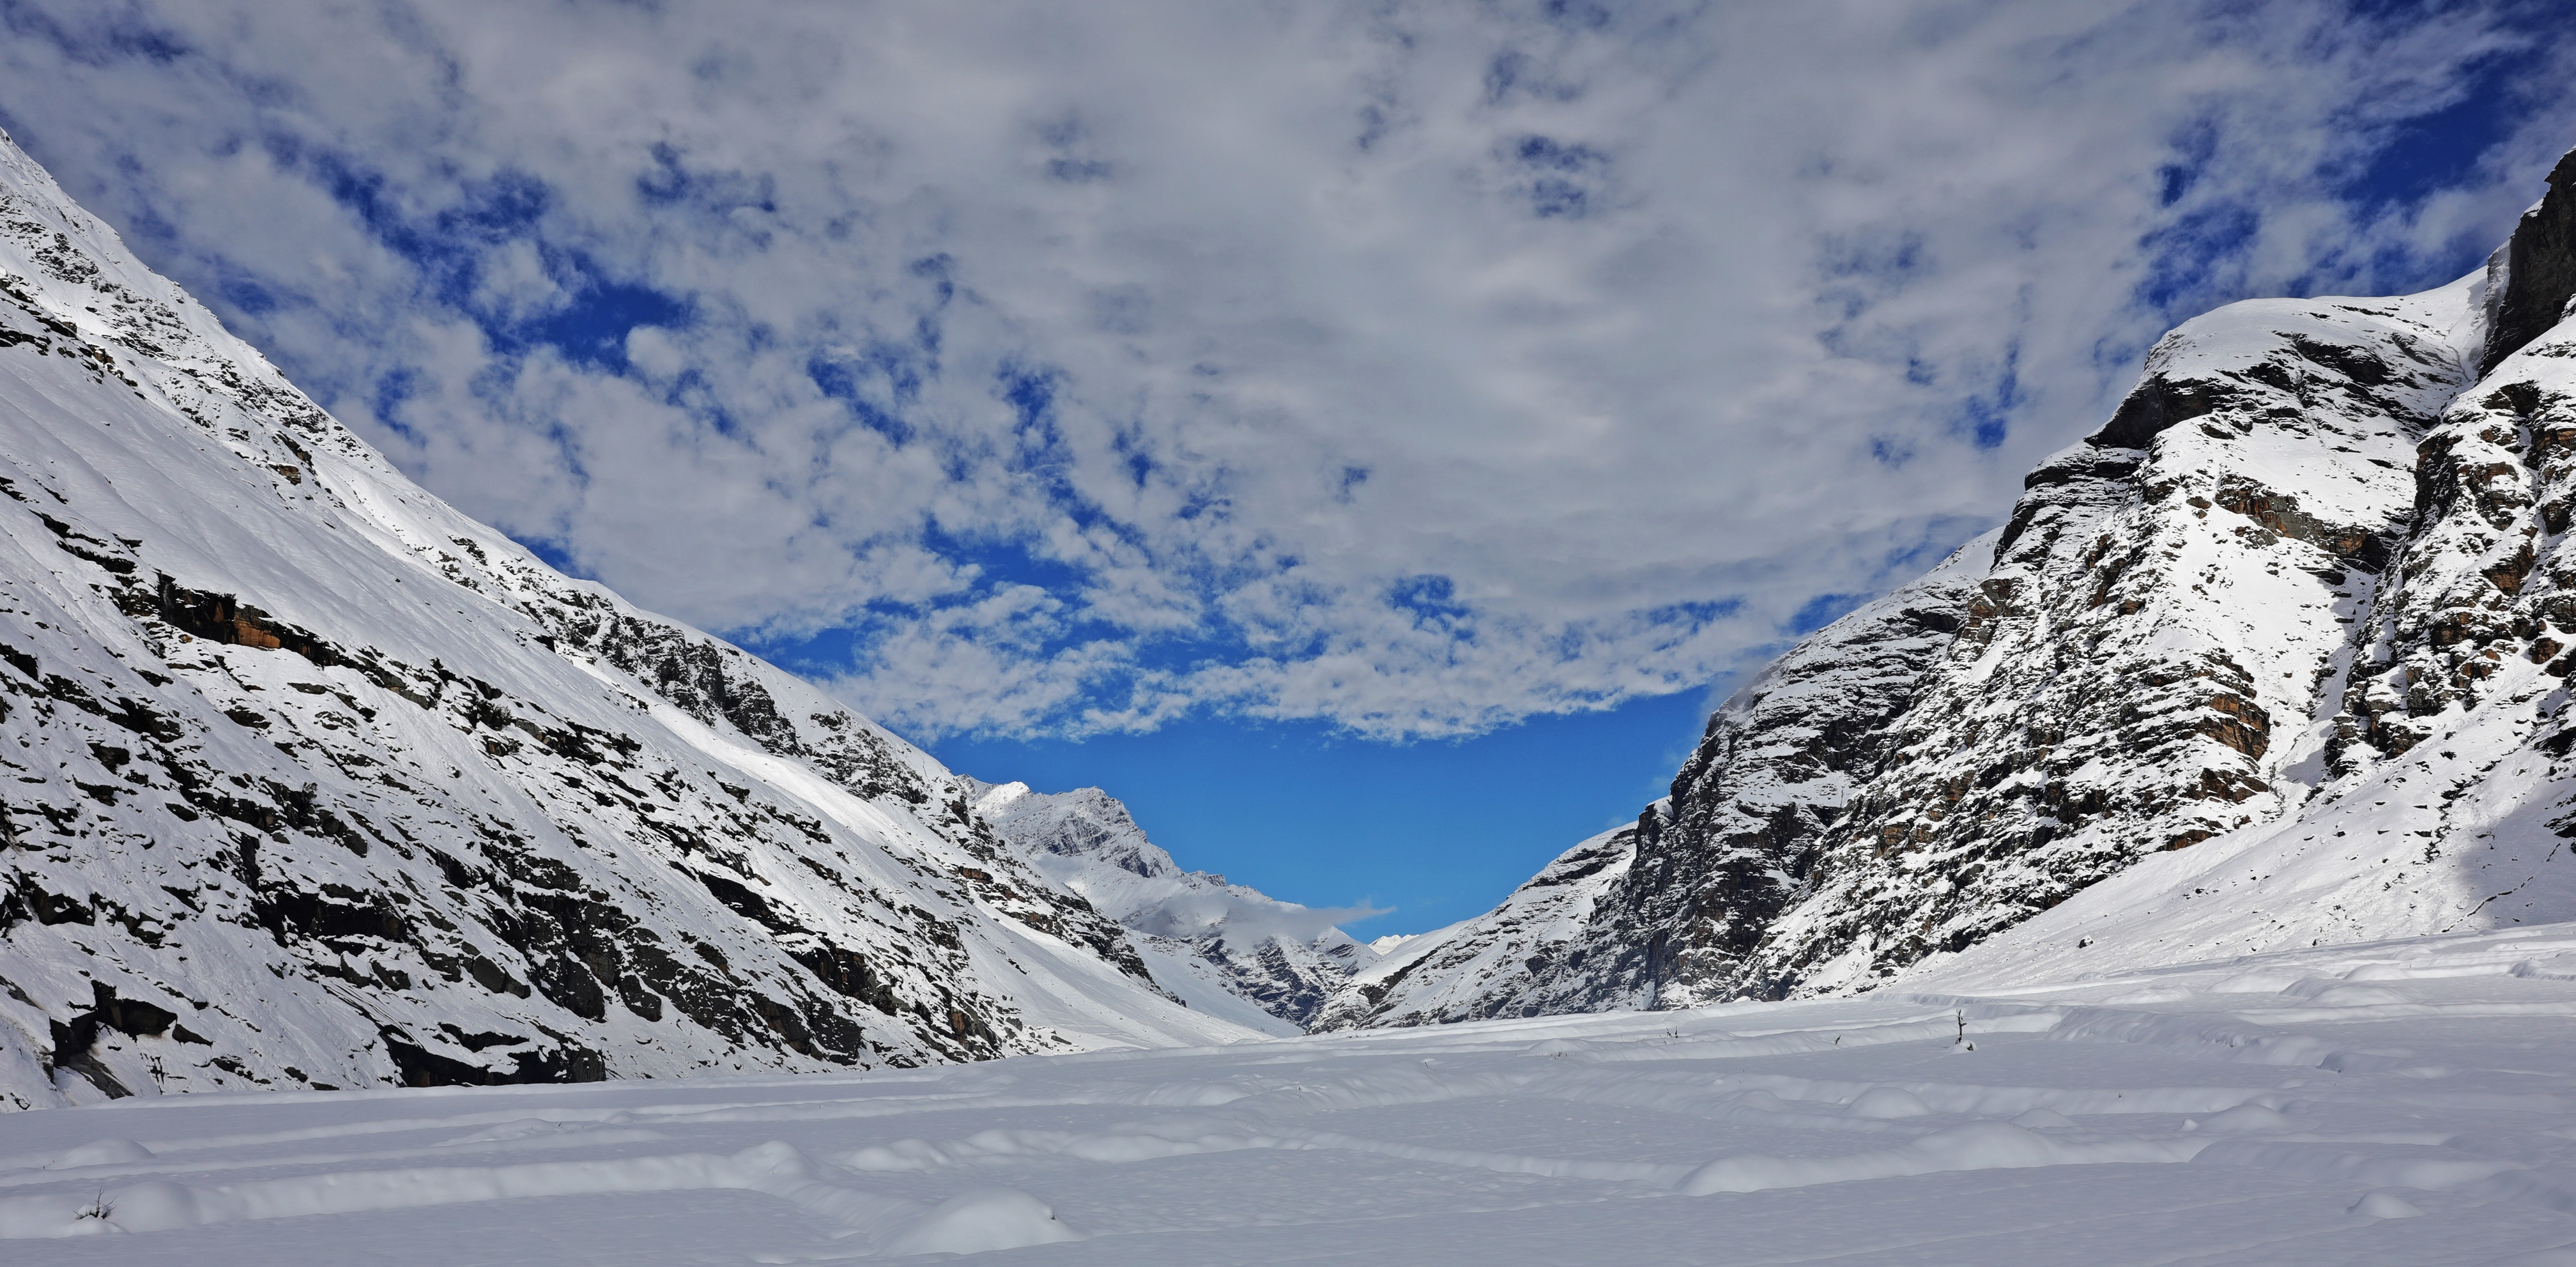 Beautiful mountains after the blizzard, Khoksar